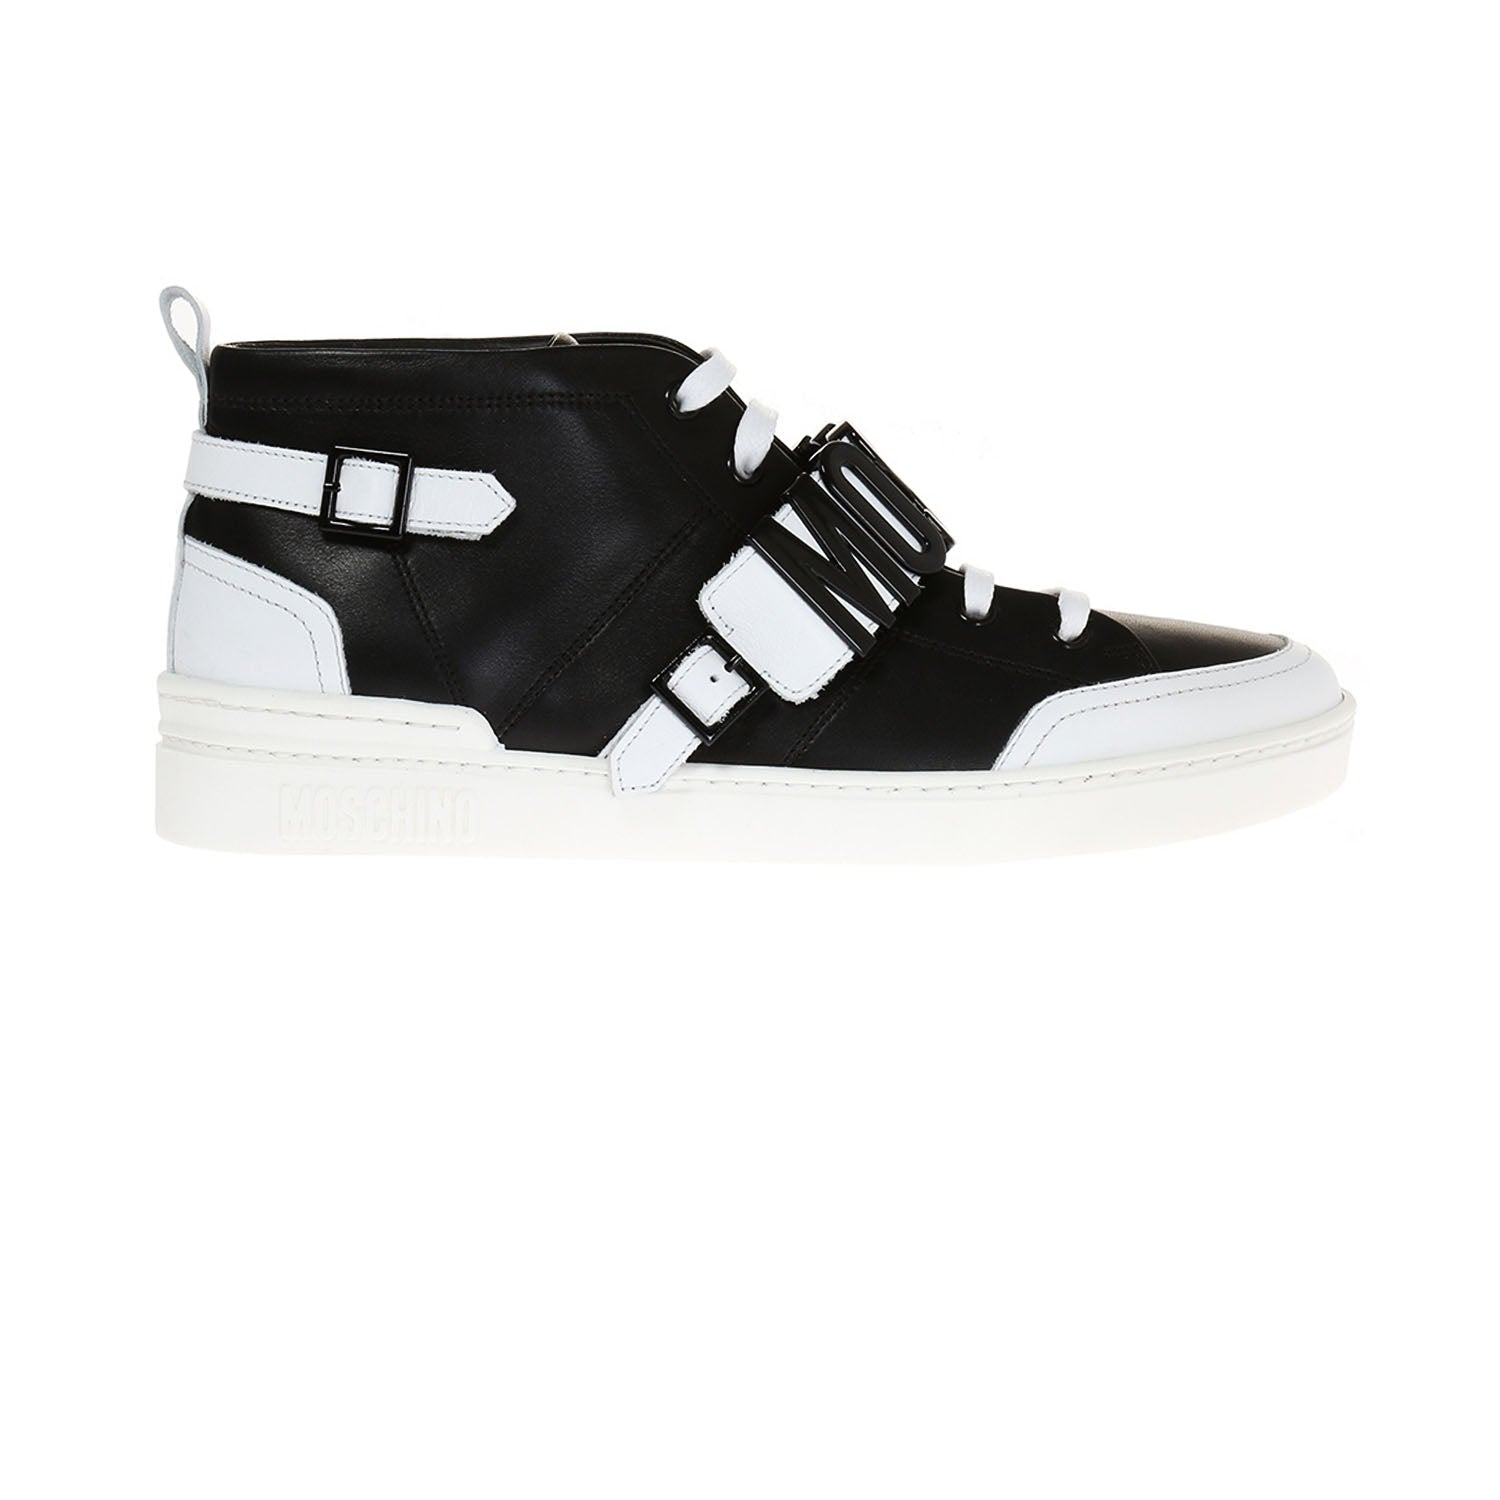 Moschino Black and White Lace-Up Leather Trainer